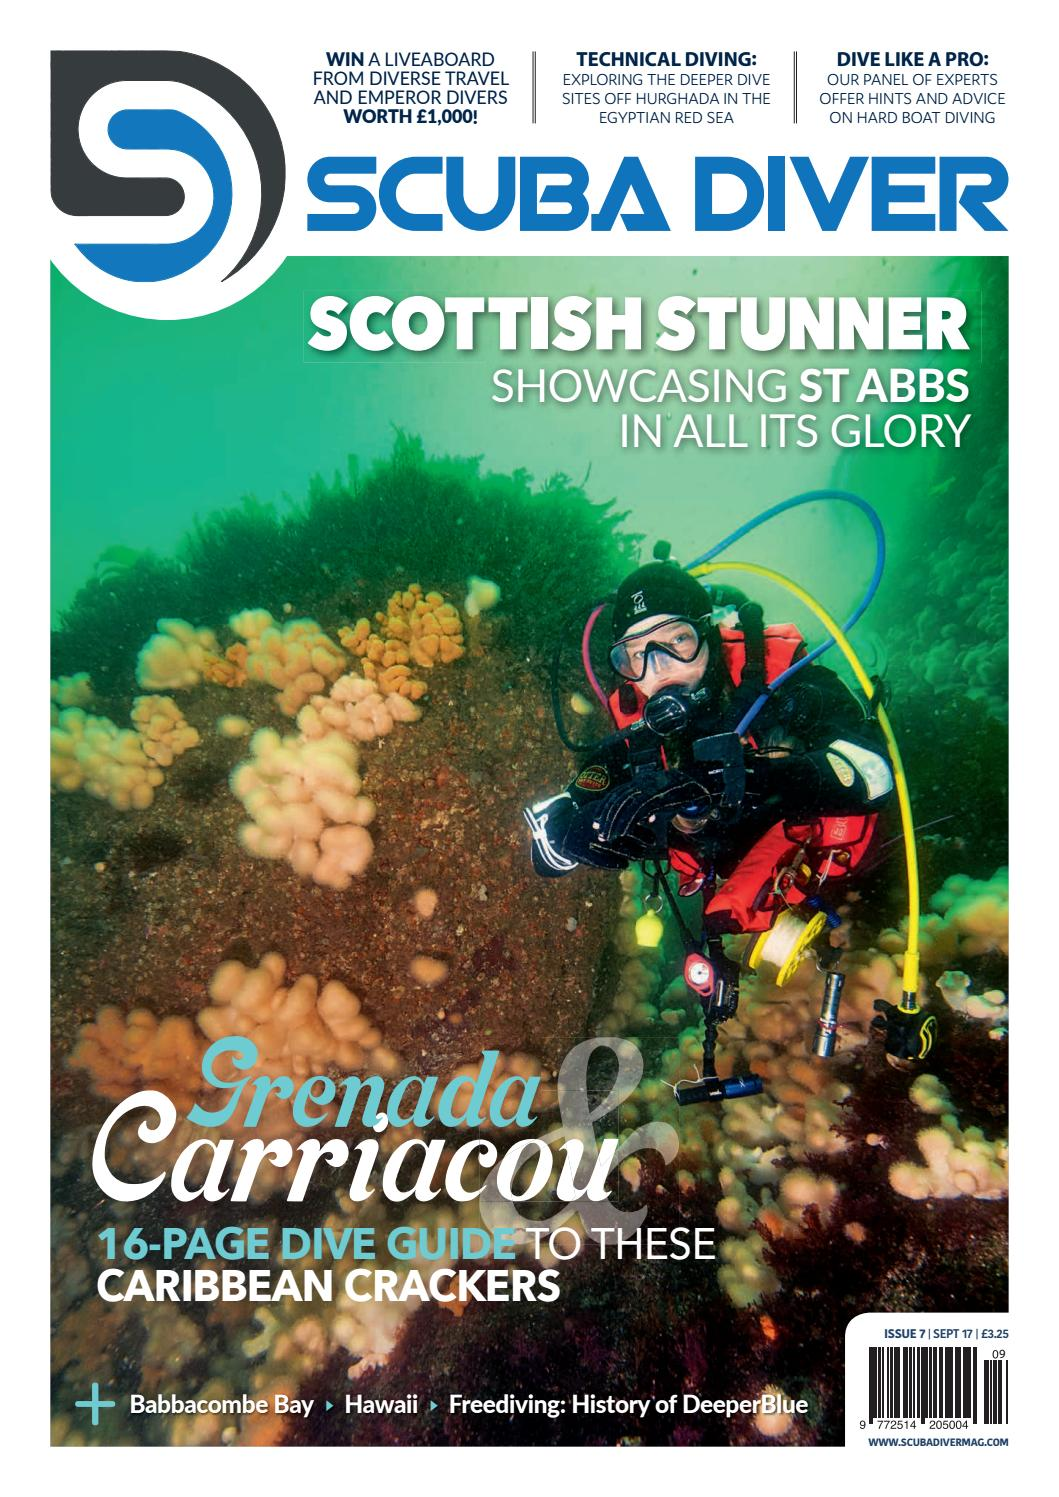 Scuba Diver September 17 - Issue 7 by scubadivermag - issuu